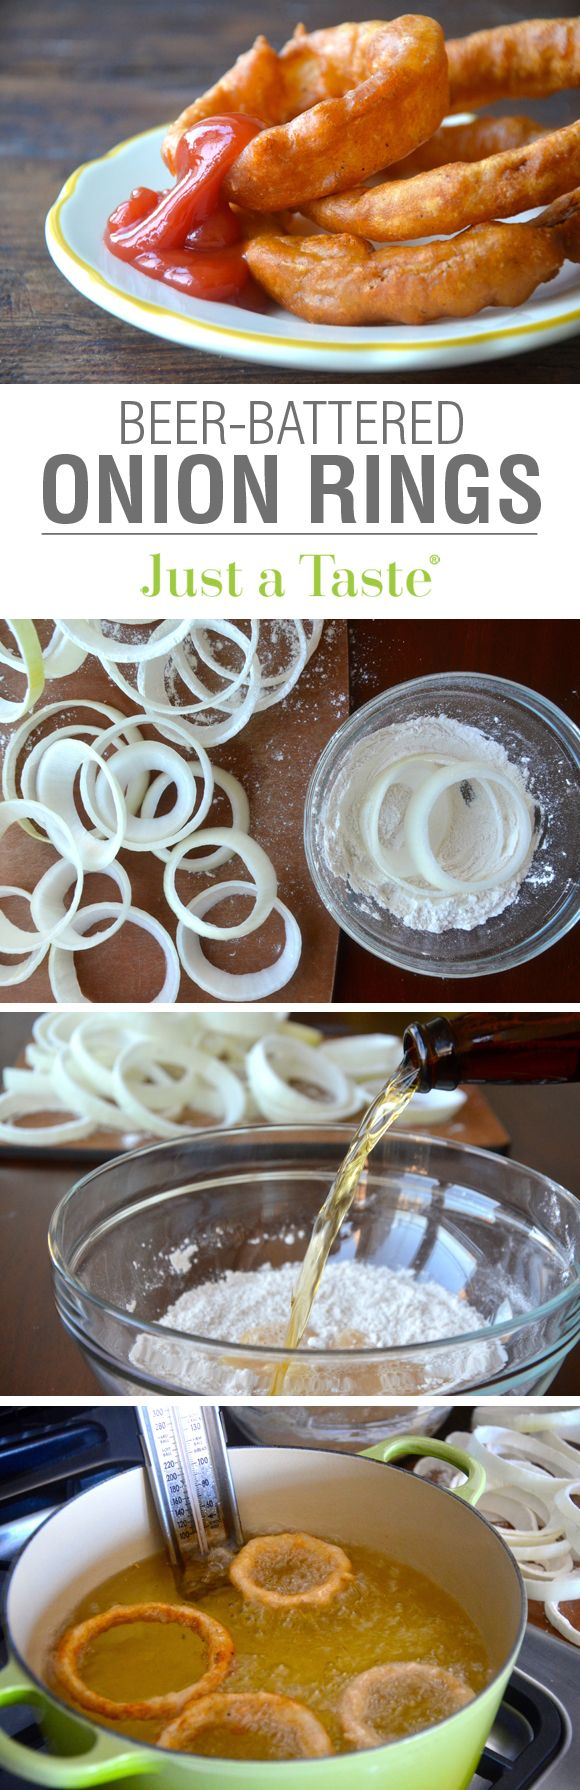 All Things Savory: Beer-Battered Onion Rings Recipe